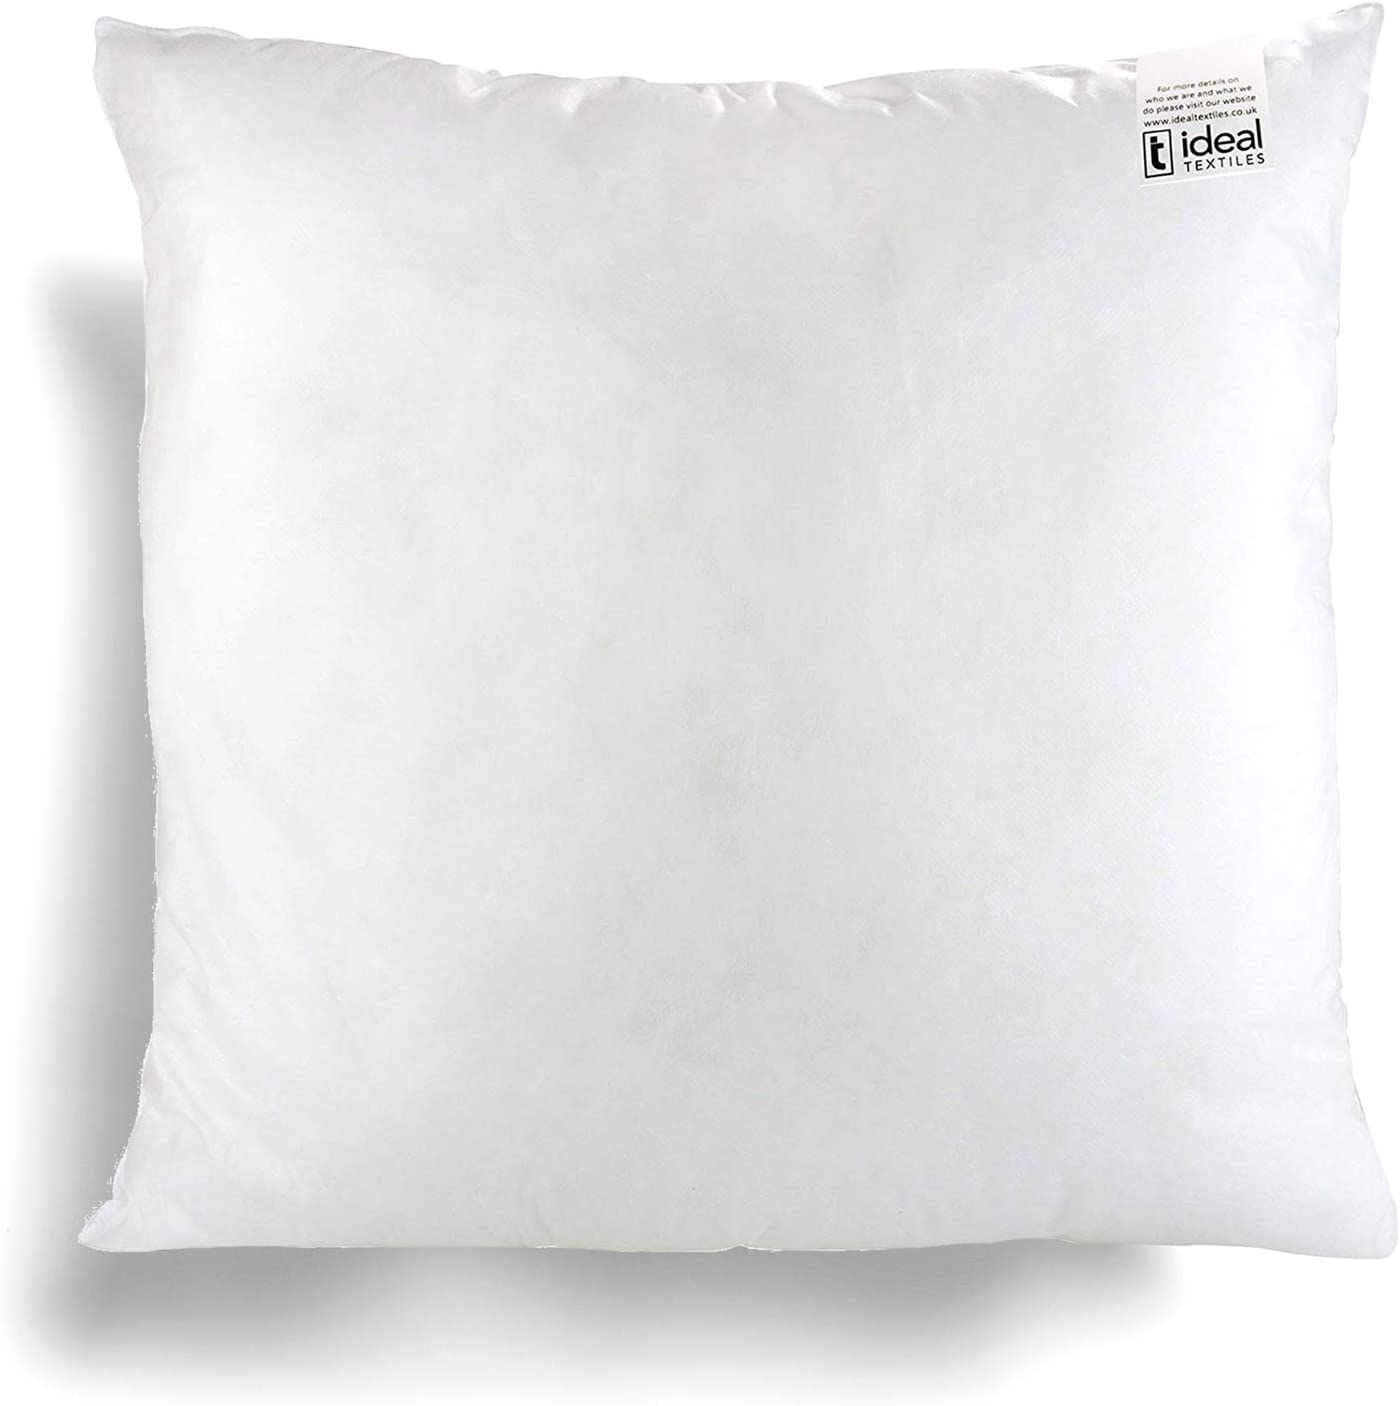 """19/"""" x 19/"""" Inch Cushion Inner Pad Pads Inner Fillers Cushion Inserts Pack of 4"""